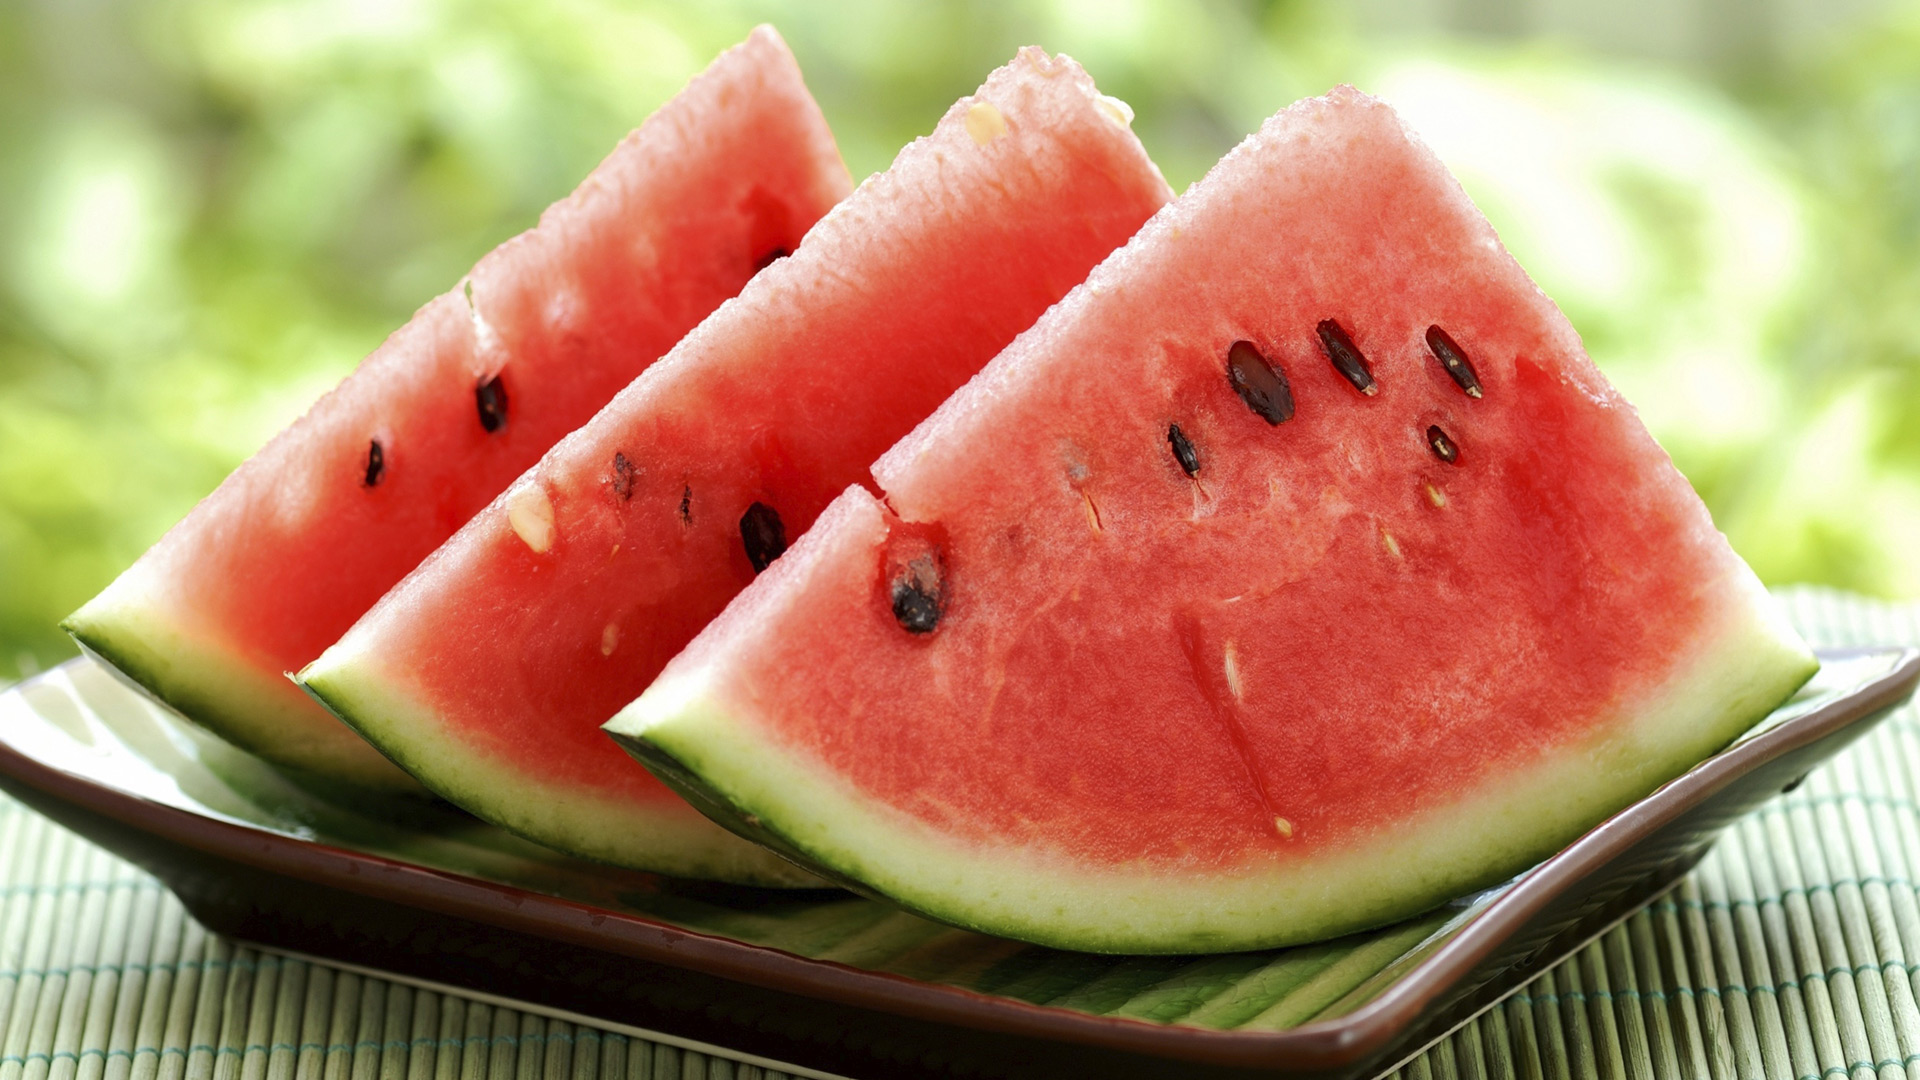 Watermelons | Sheknows.com